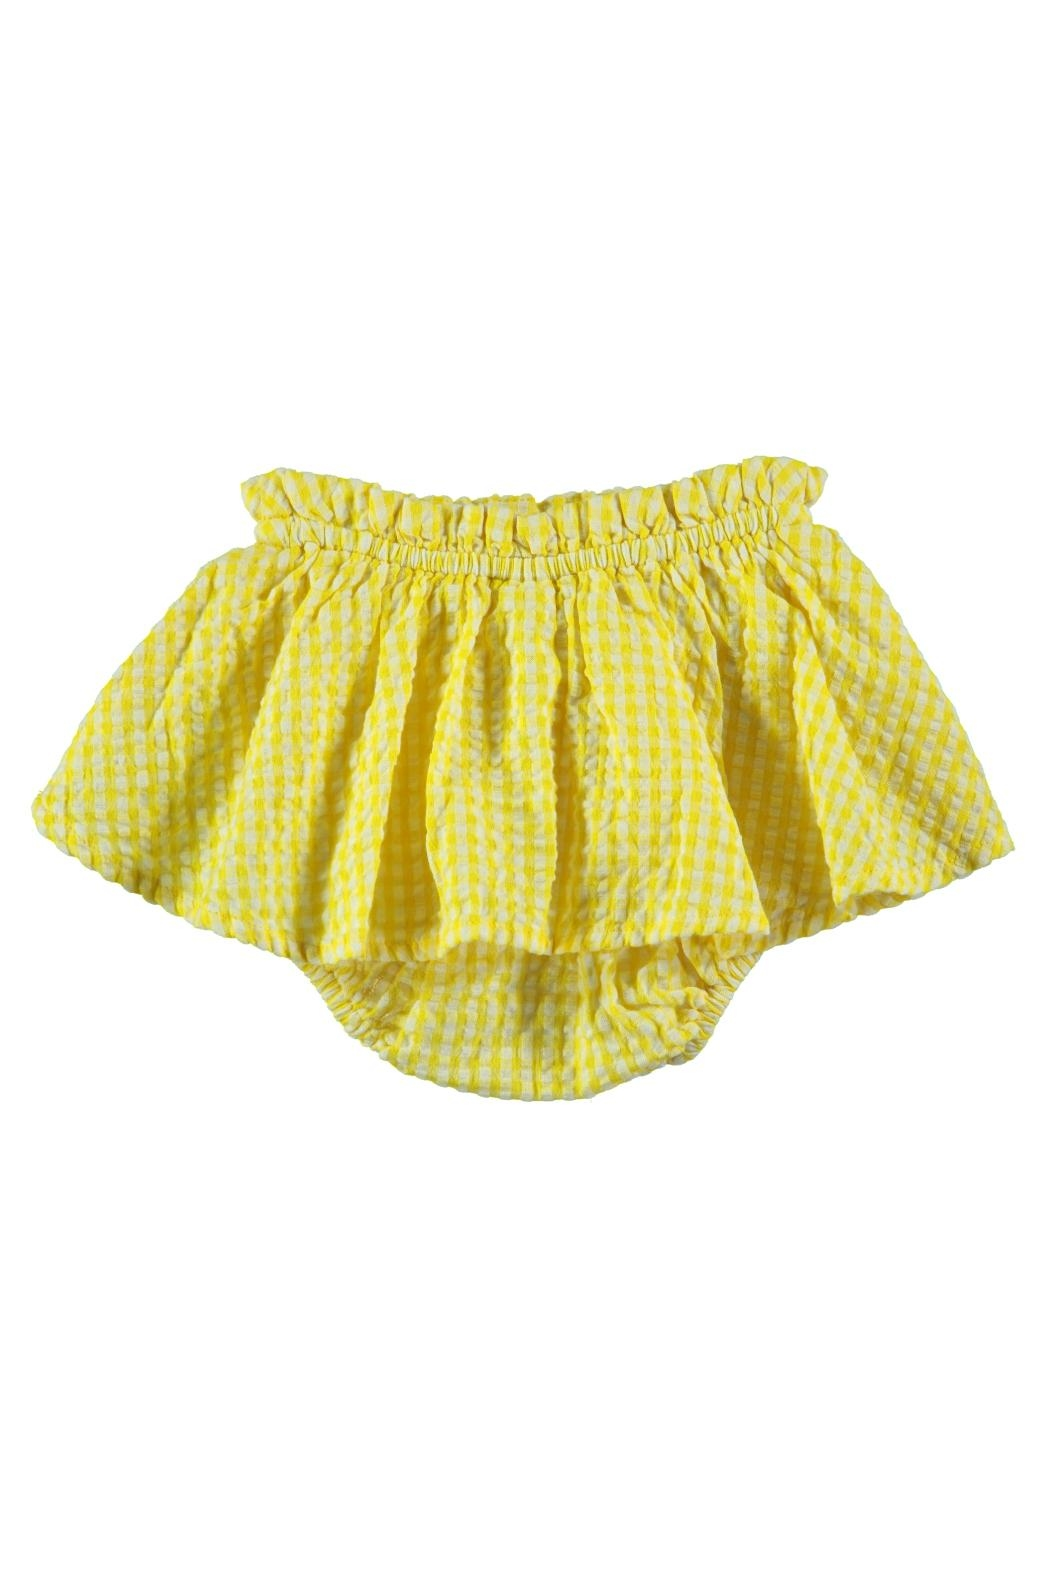 Molo Sabella Skirted Bloomers - Front Full Image